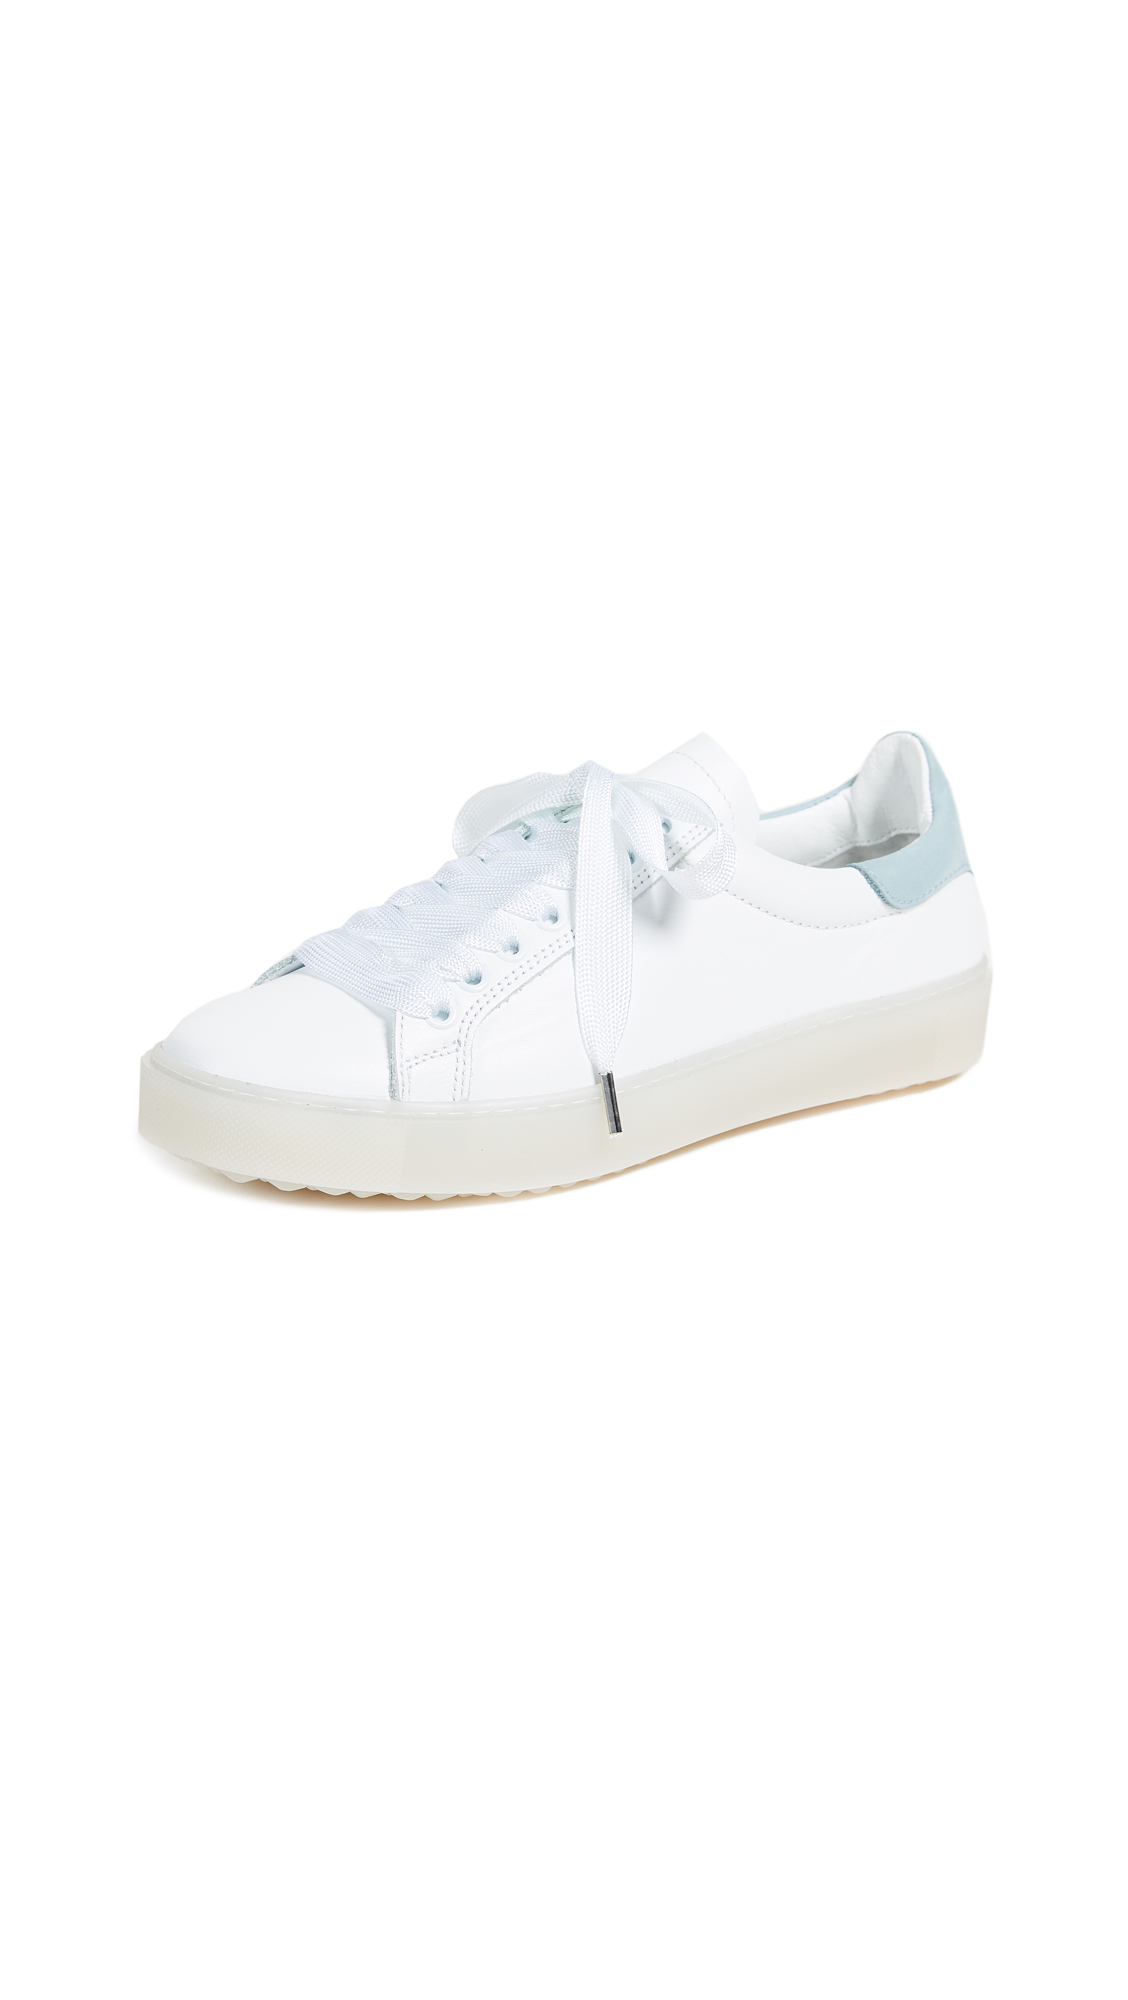 ONE by Melrose Sneakers - White/Sky